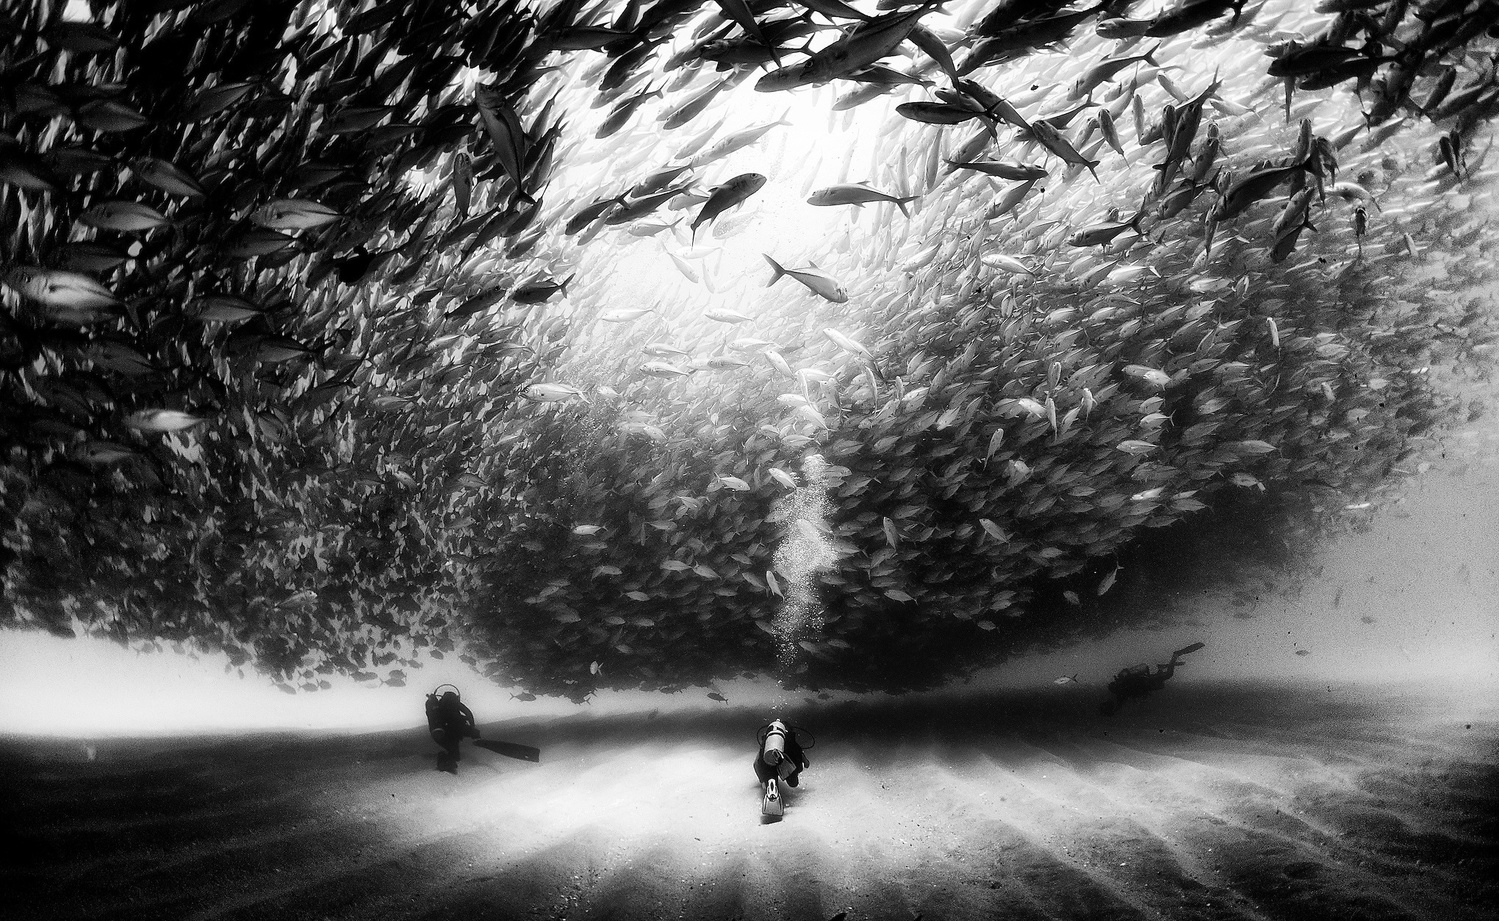 The Captivating Black and White Underwater Photography of ...